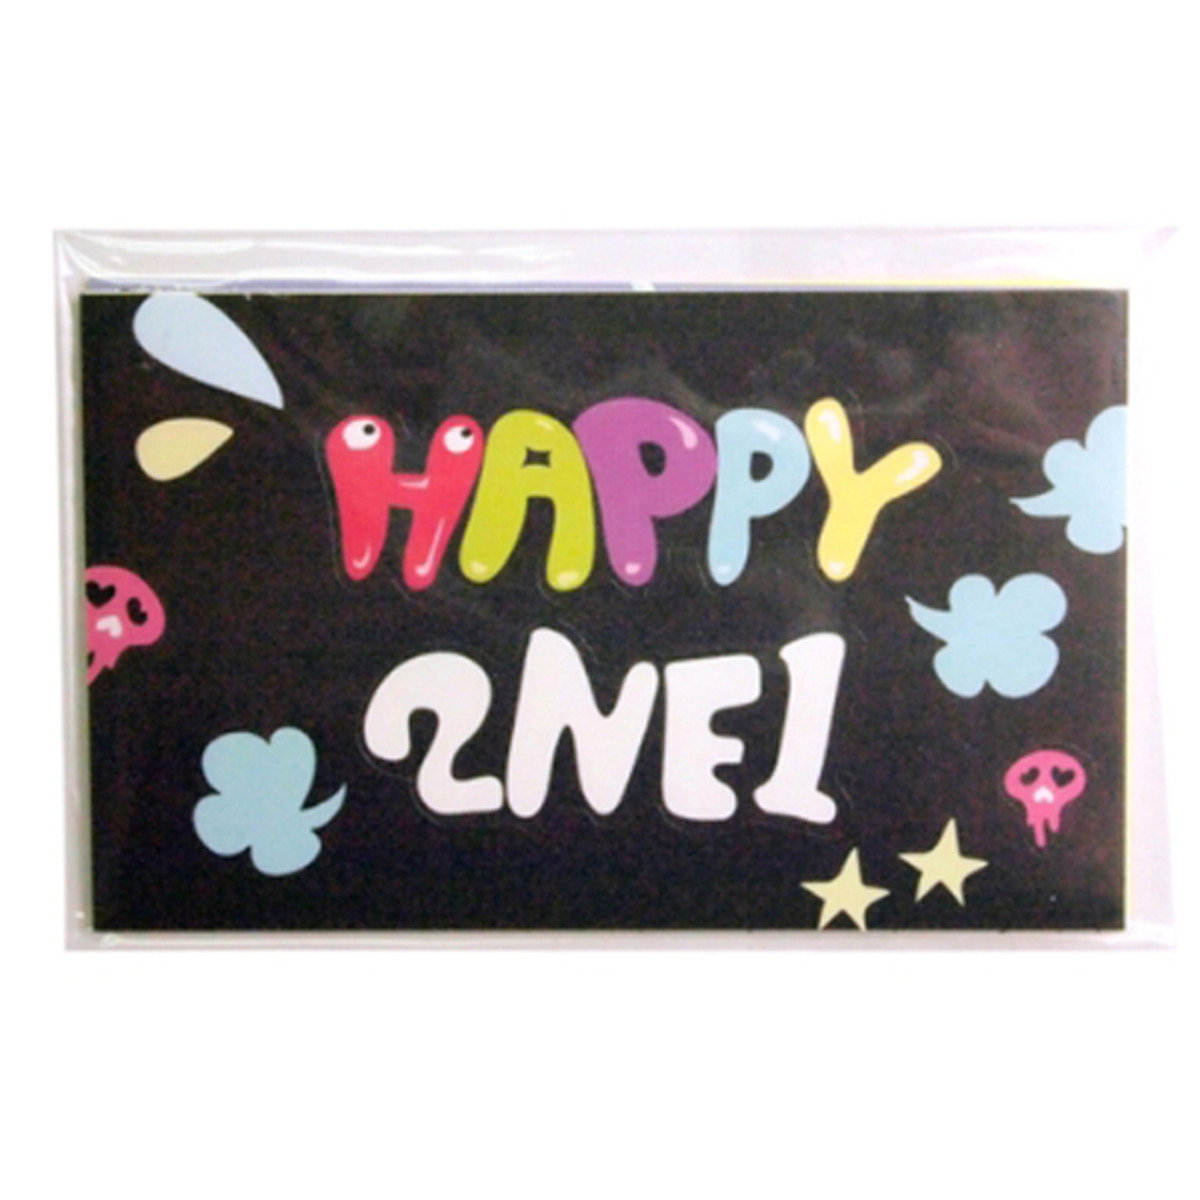 2NE1 CRUSH-HAPPY 貼紙SET _49512